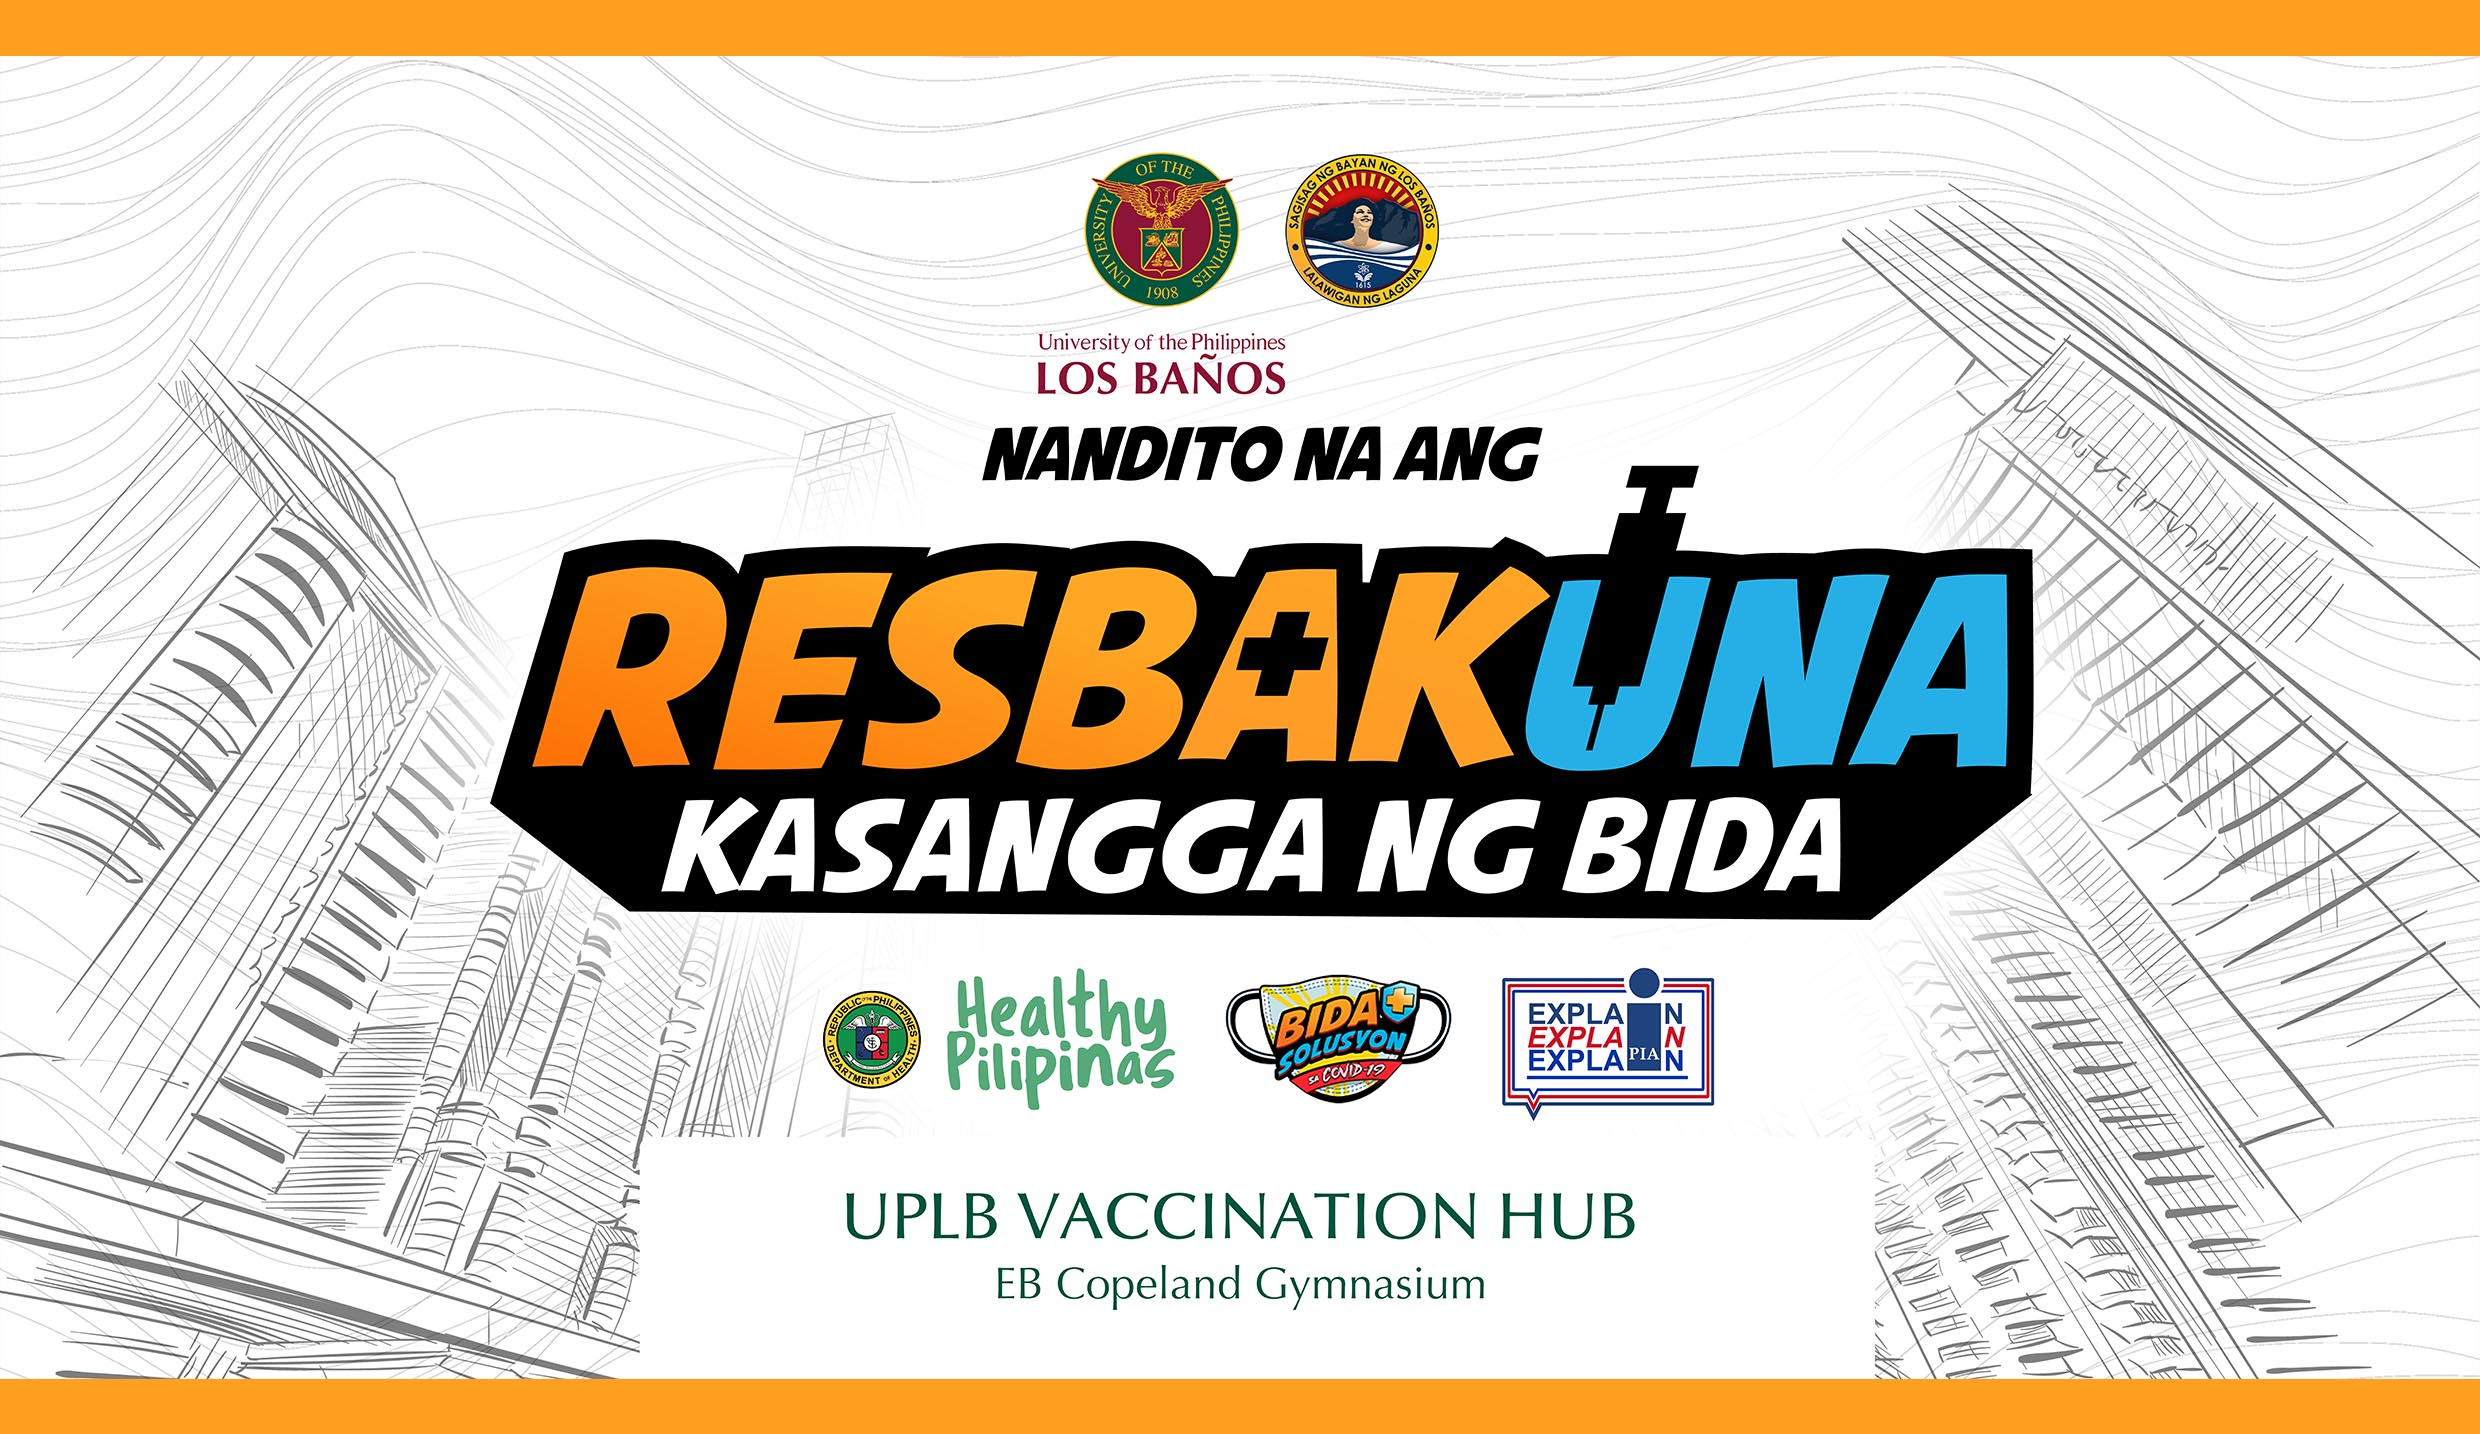 UPLB's Copeland Gym to be used as vaccination site